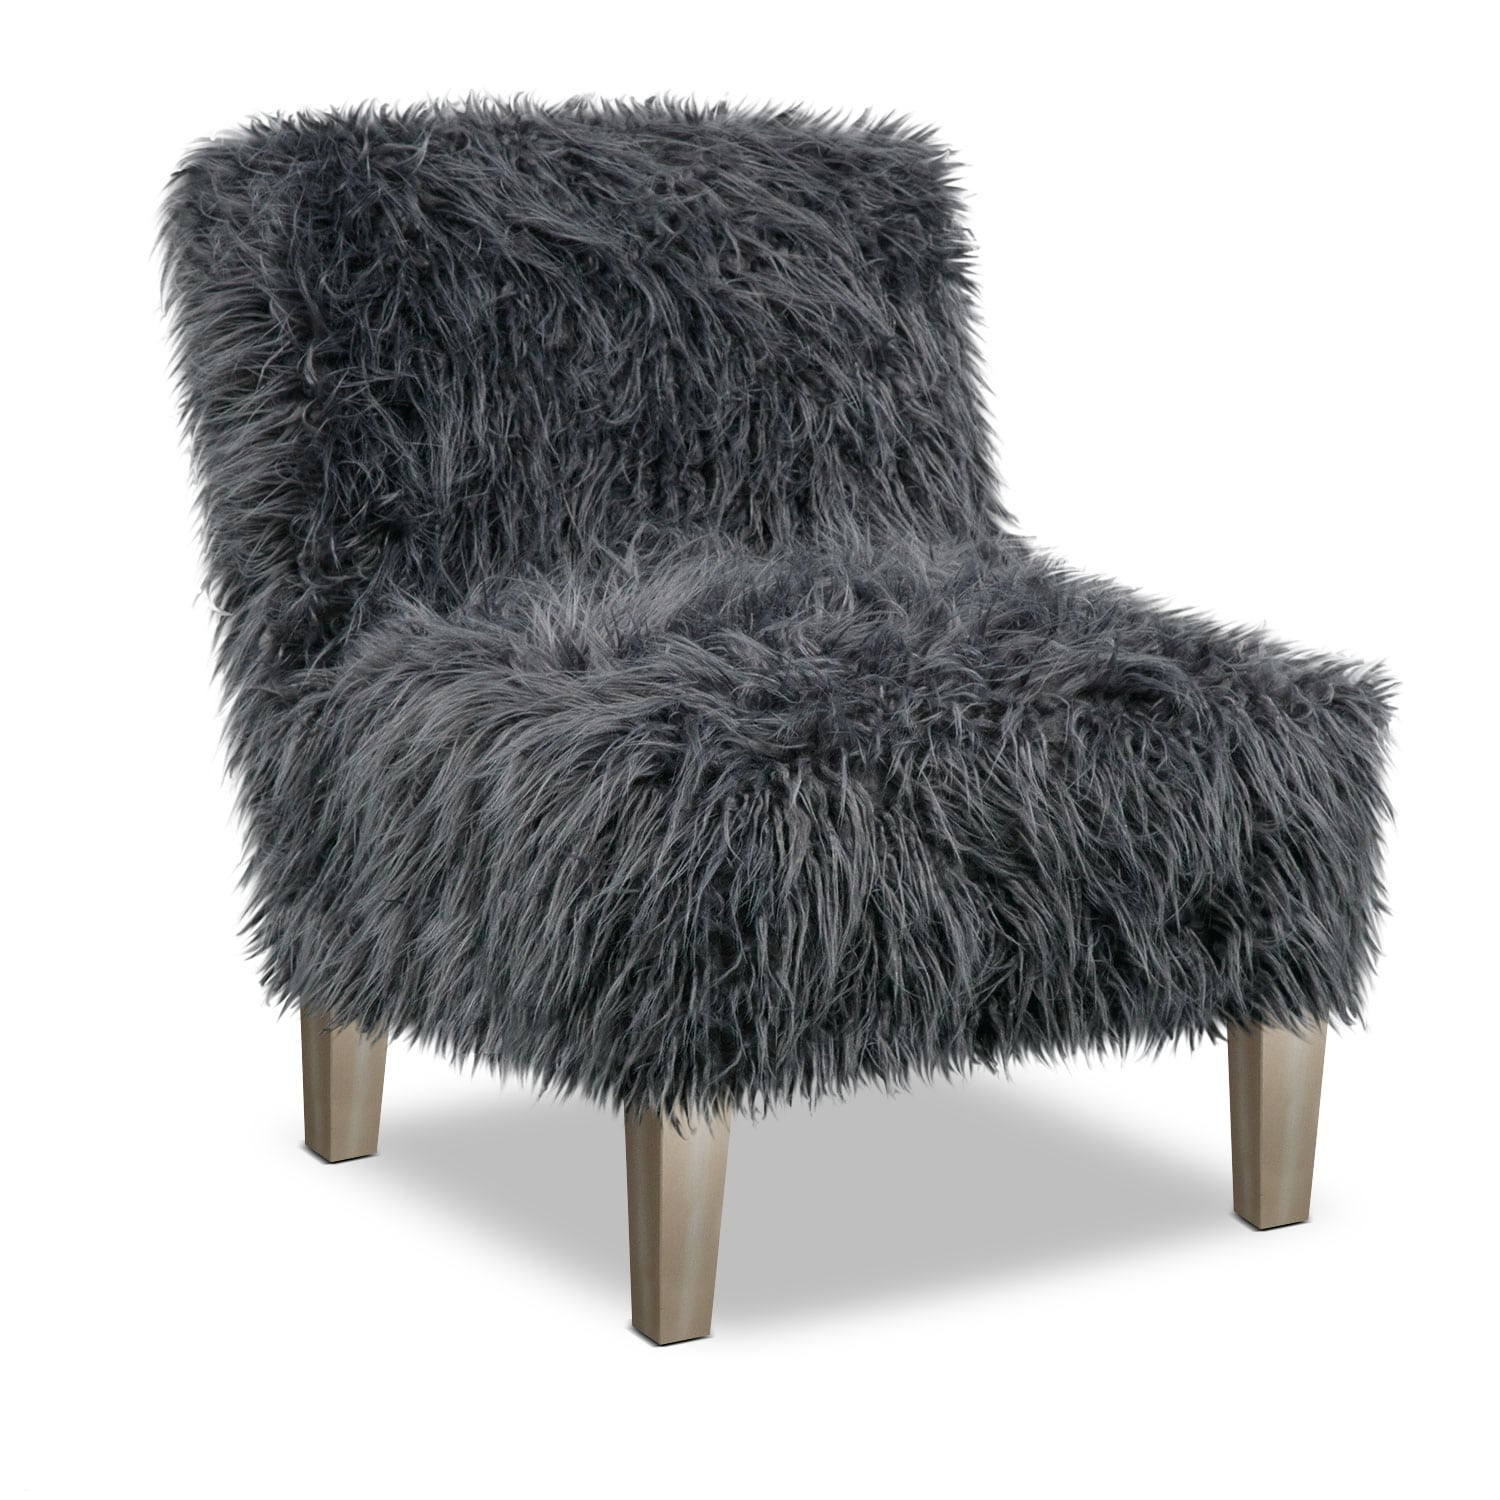 Westie Accent Chair - Gray